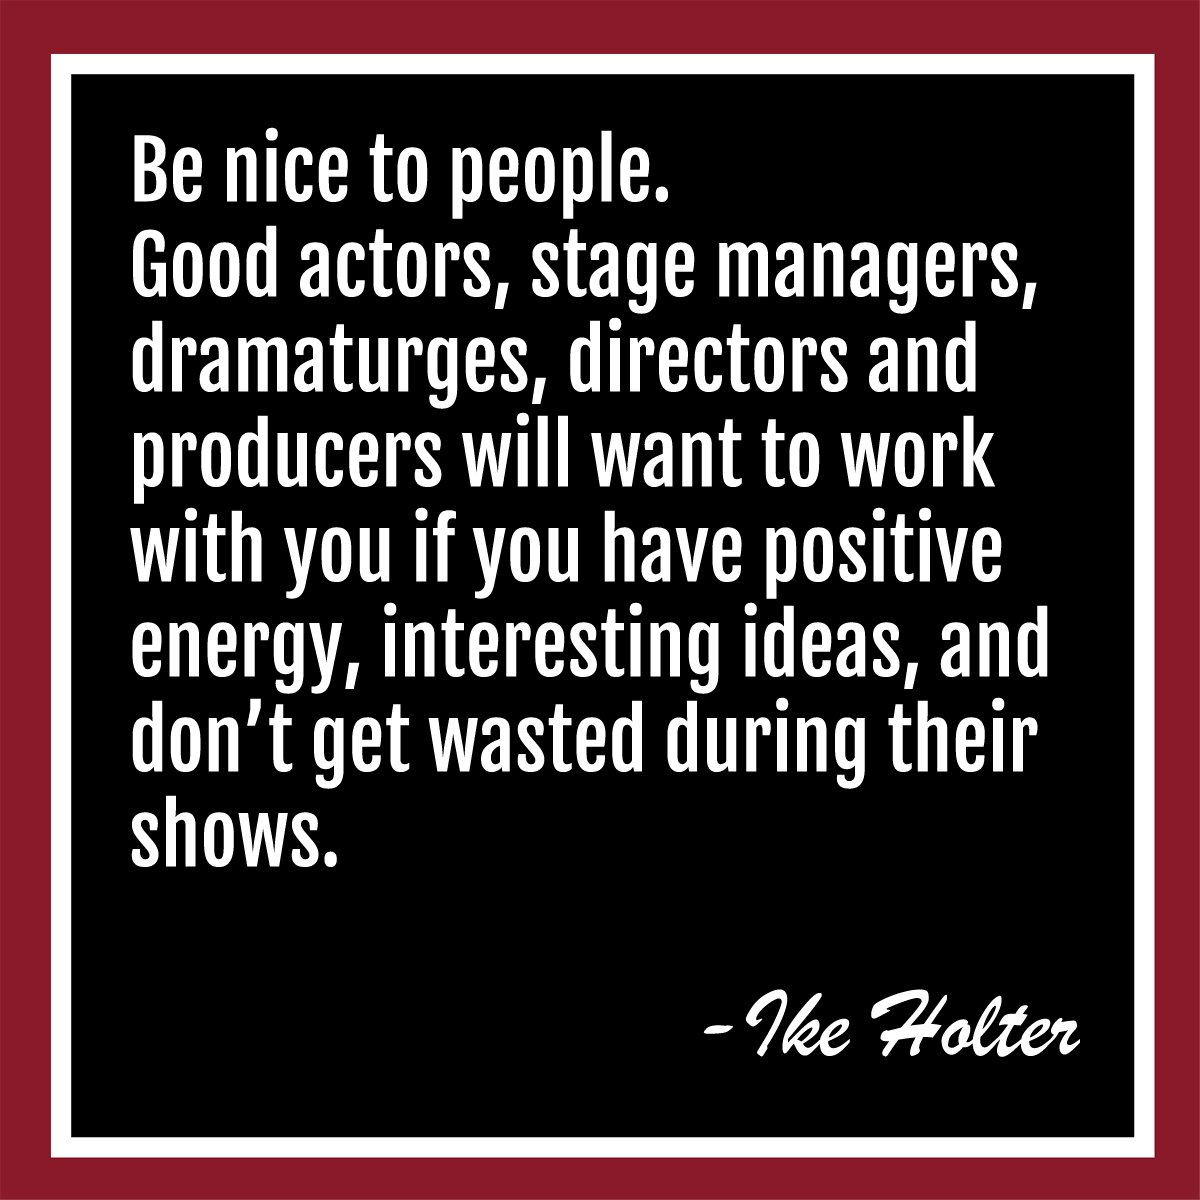 """Be nice to people."" -Ike Holter #ExitStrategy #WisdomWednesday https://t.co/ZCFt9IvVUT"